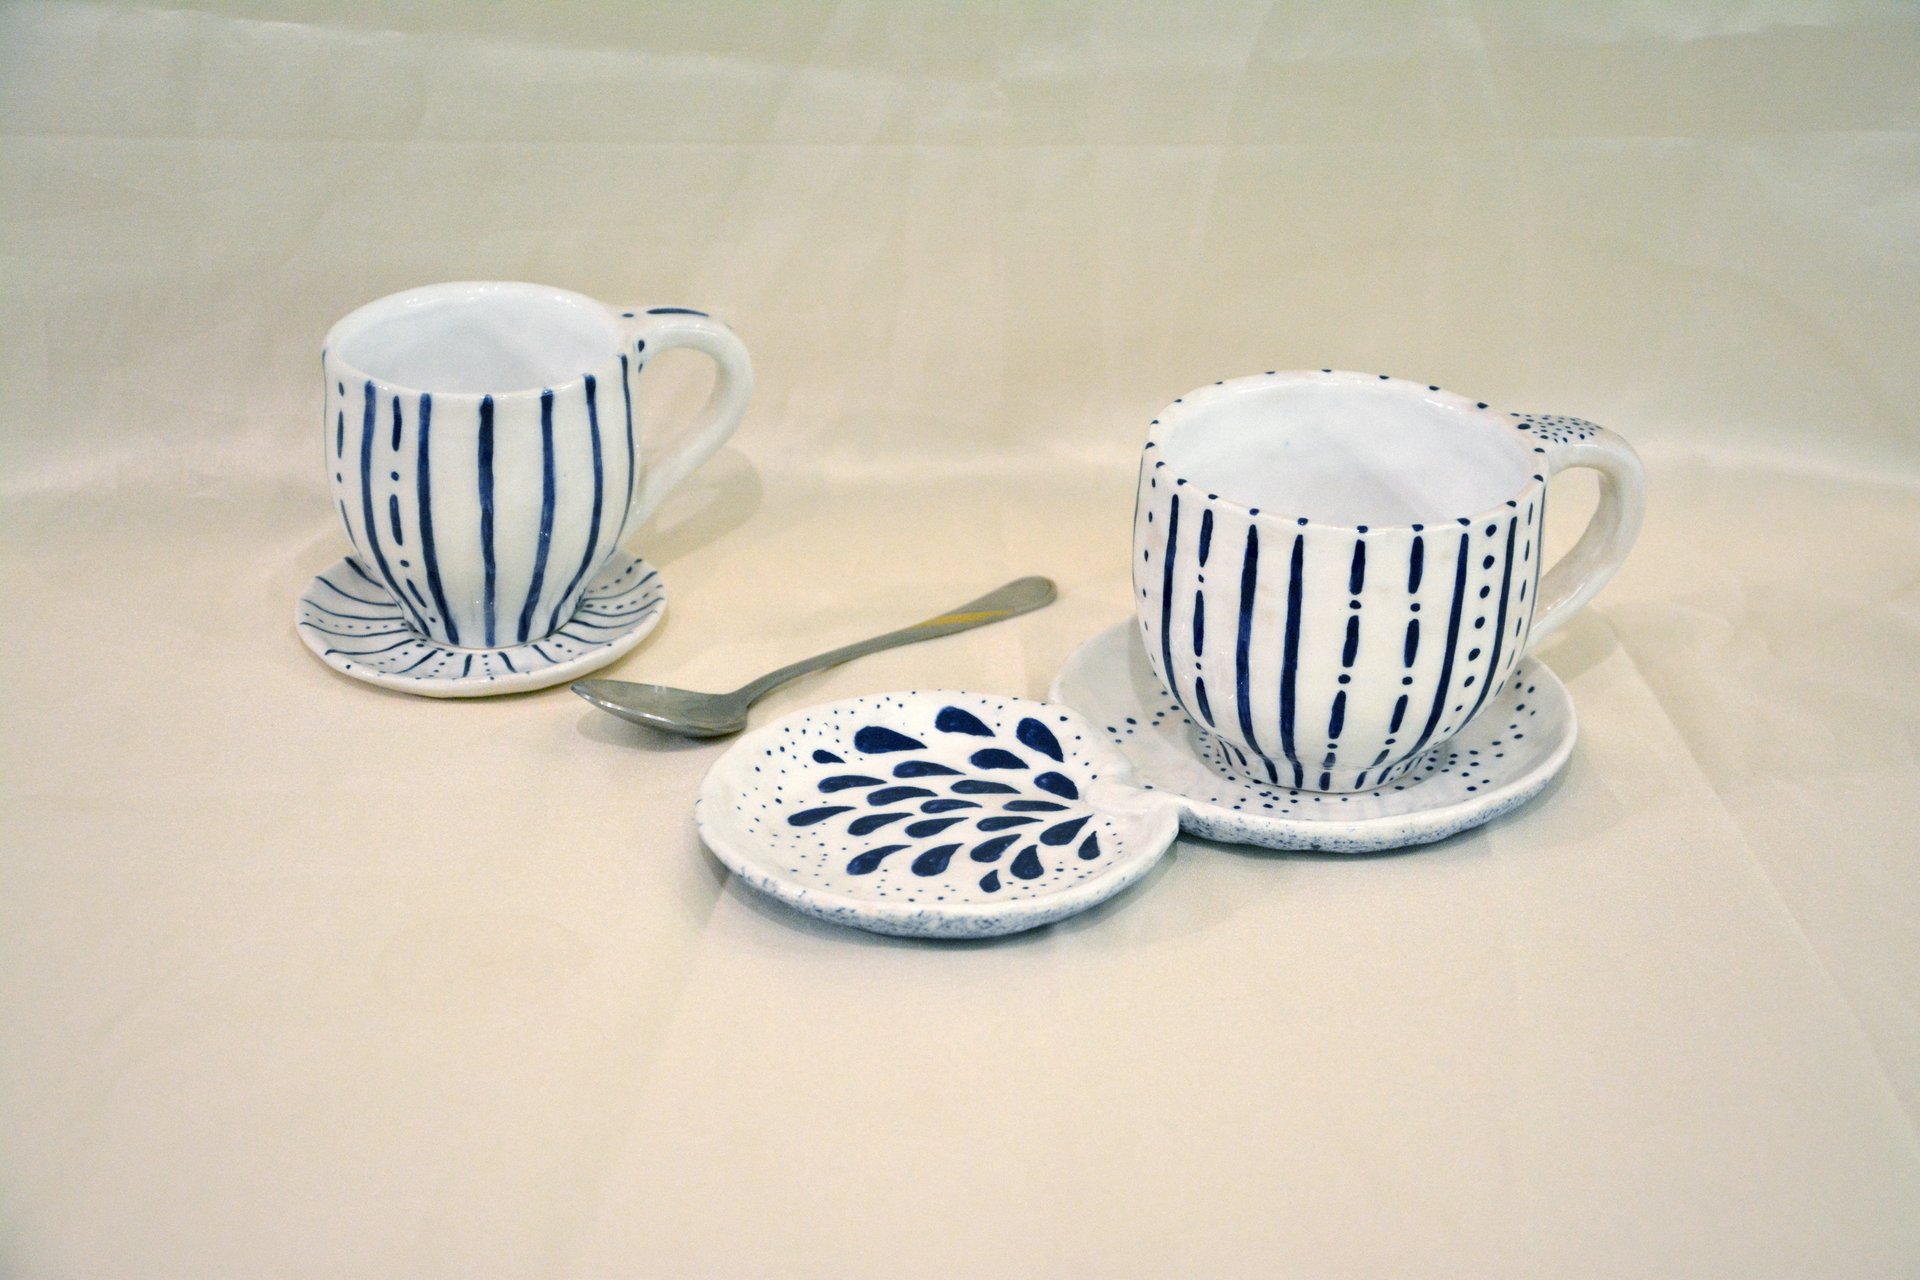 A pair of white cups with a blue pattern Strips — Points - Cups, glasses, mugs, 250 ml and 150 ml, photo 1 of 3.